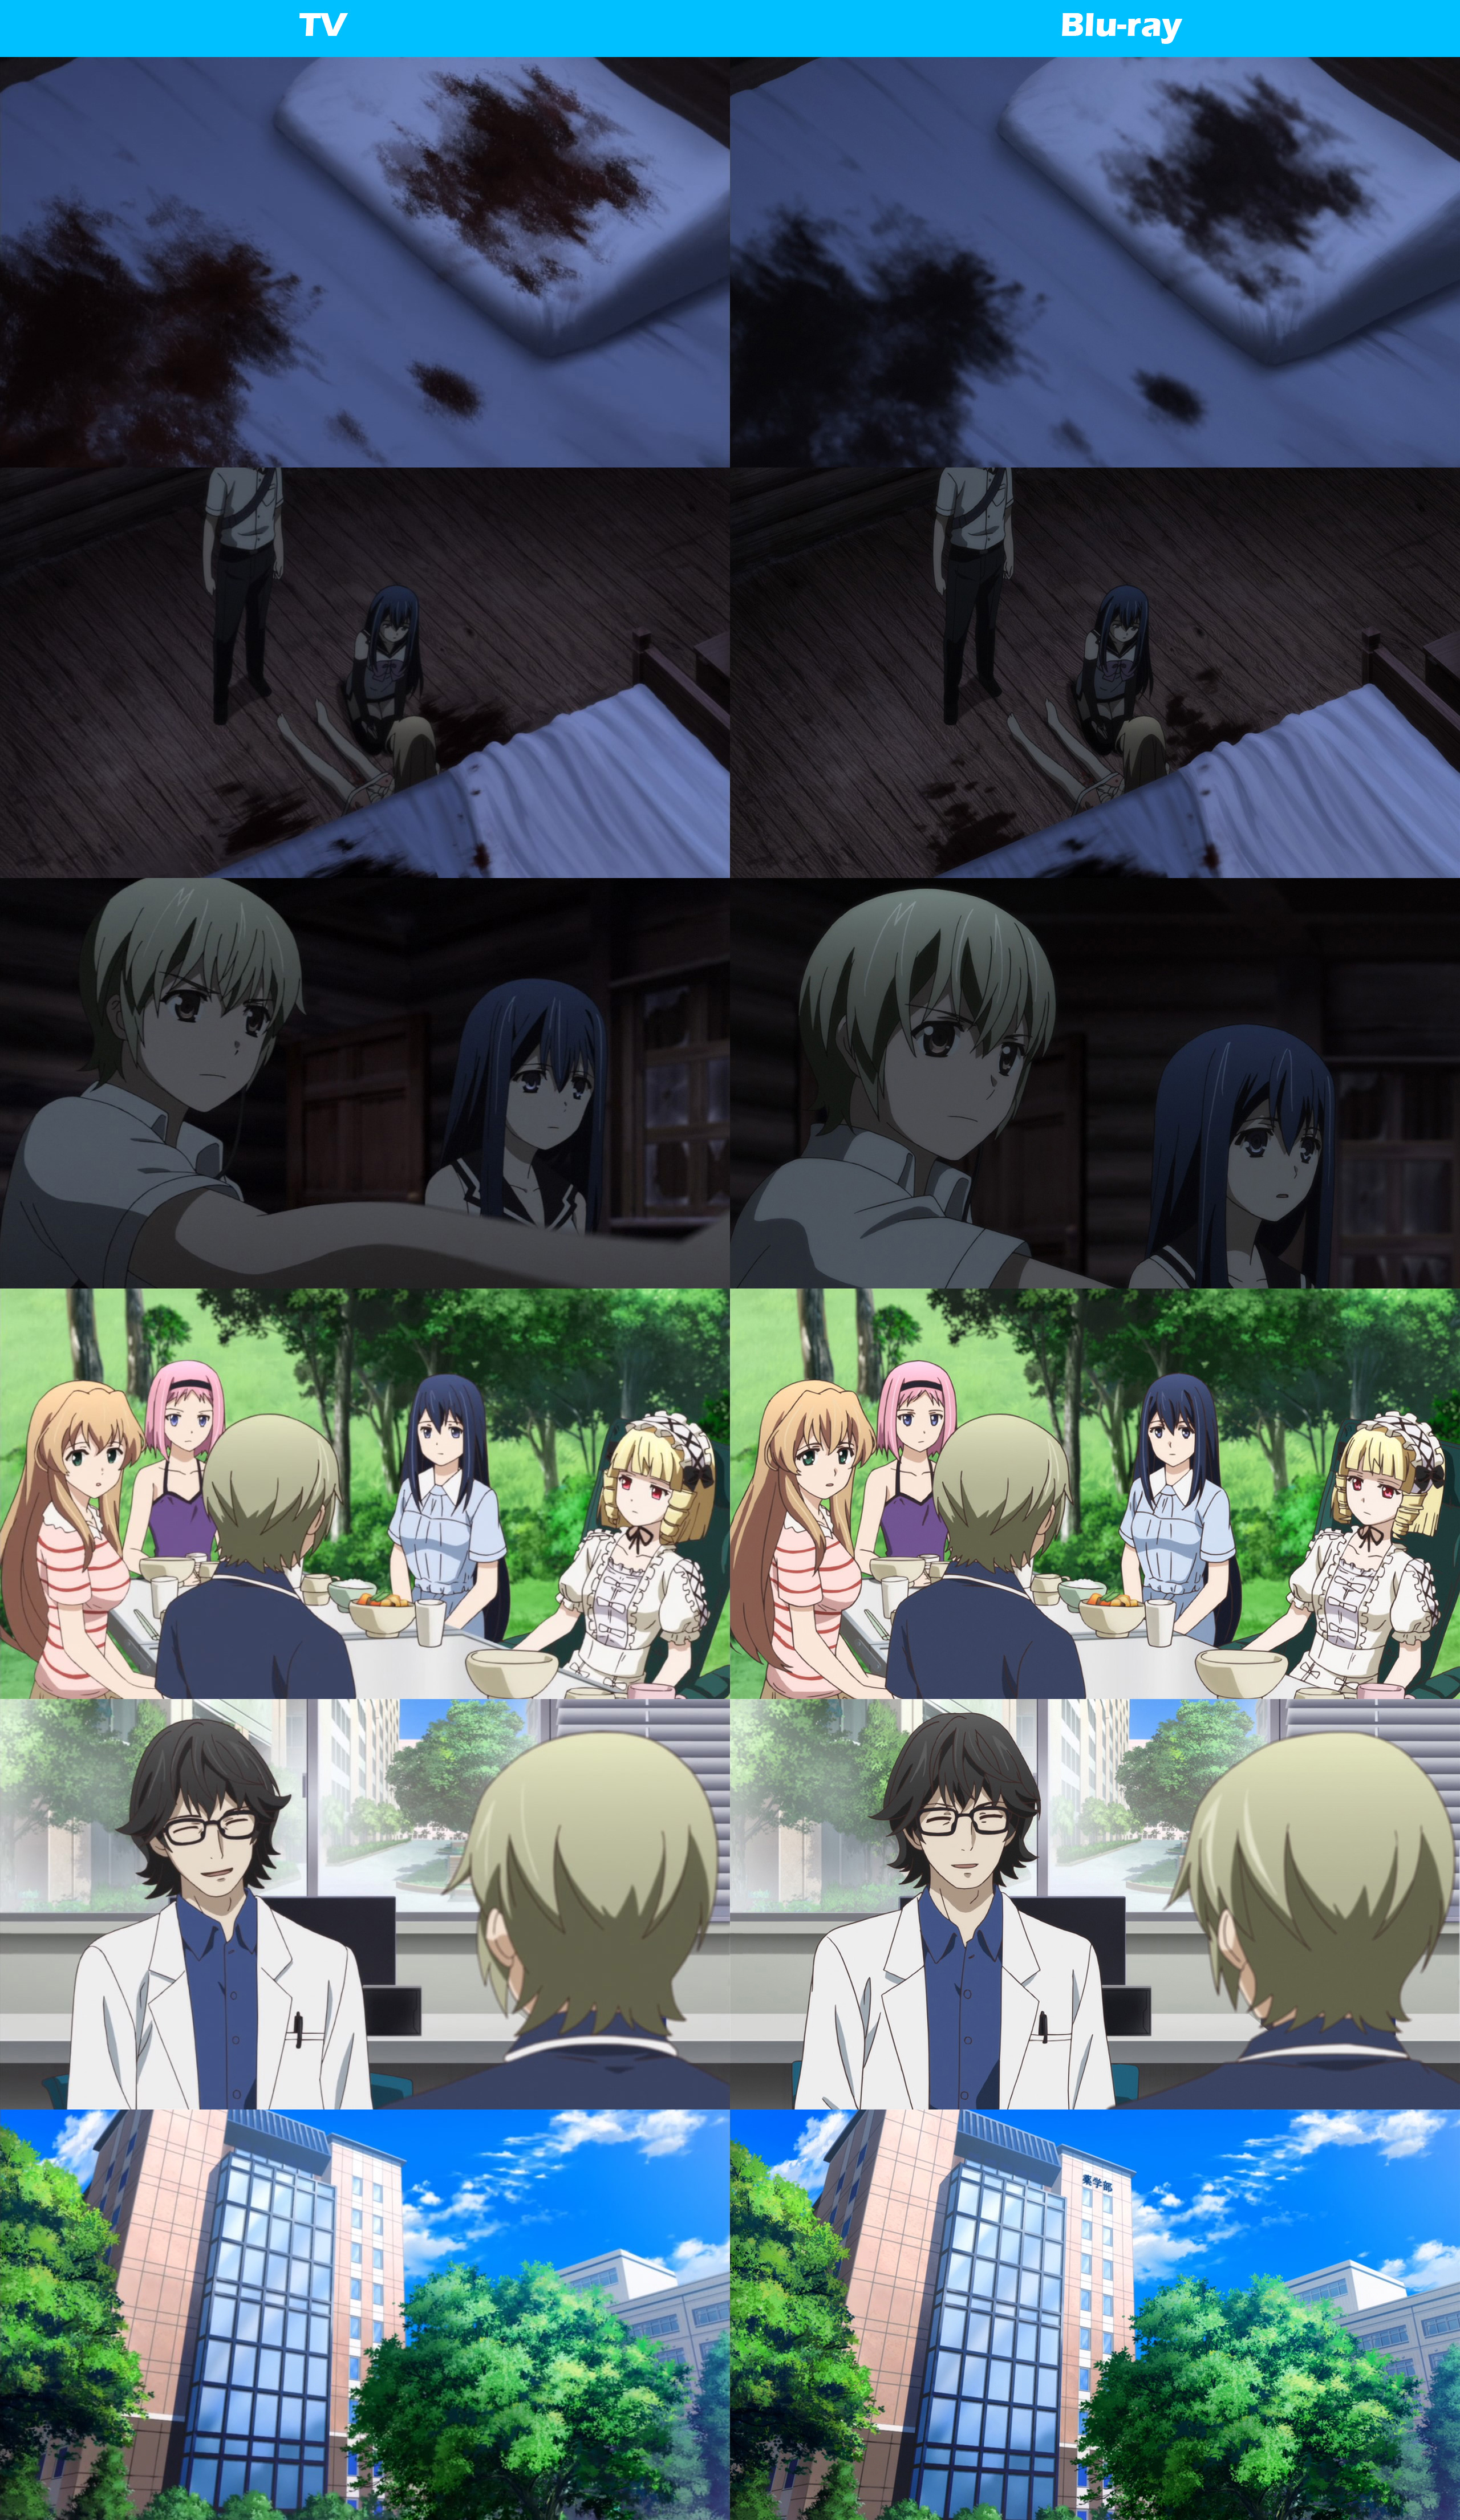 Gokukoku-no-Brynhildr-TV-and-Blu-ray-Comparison-Quality-5